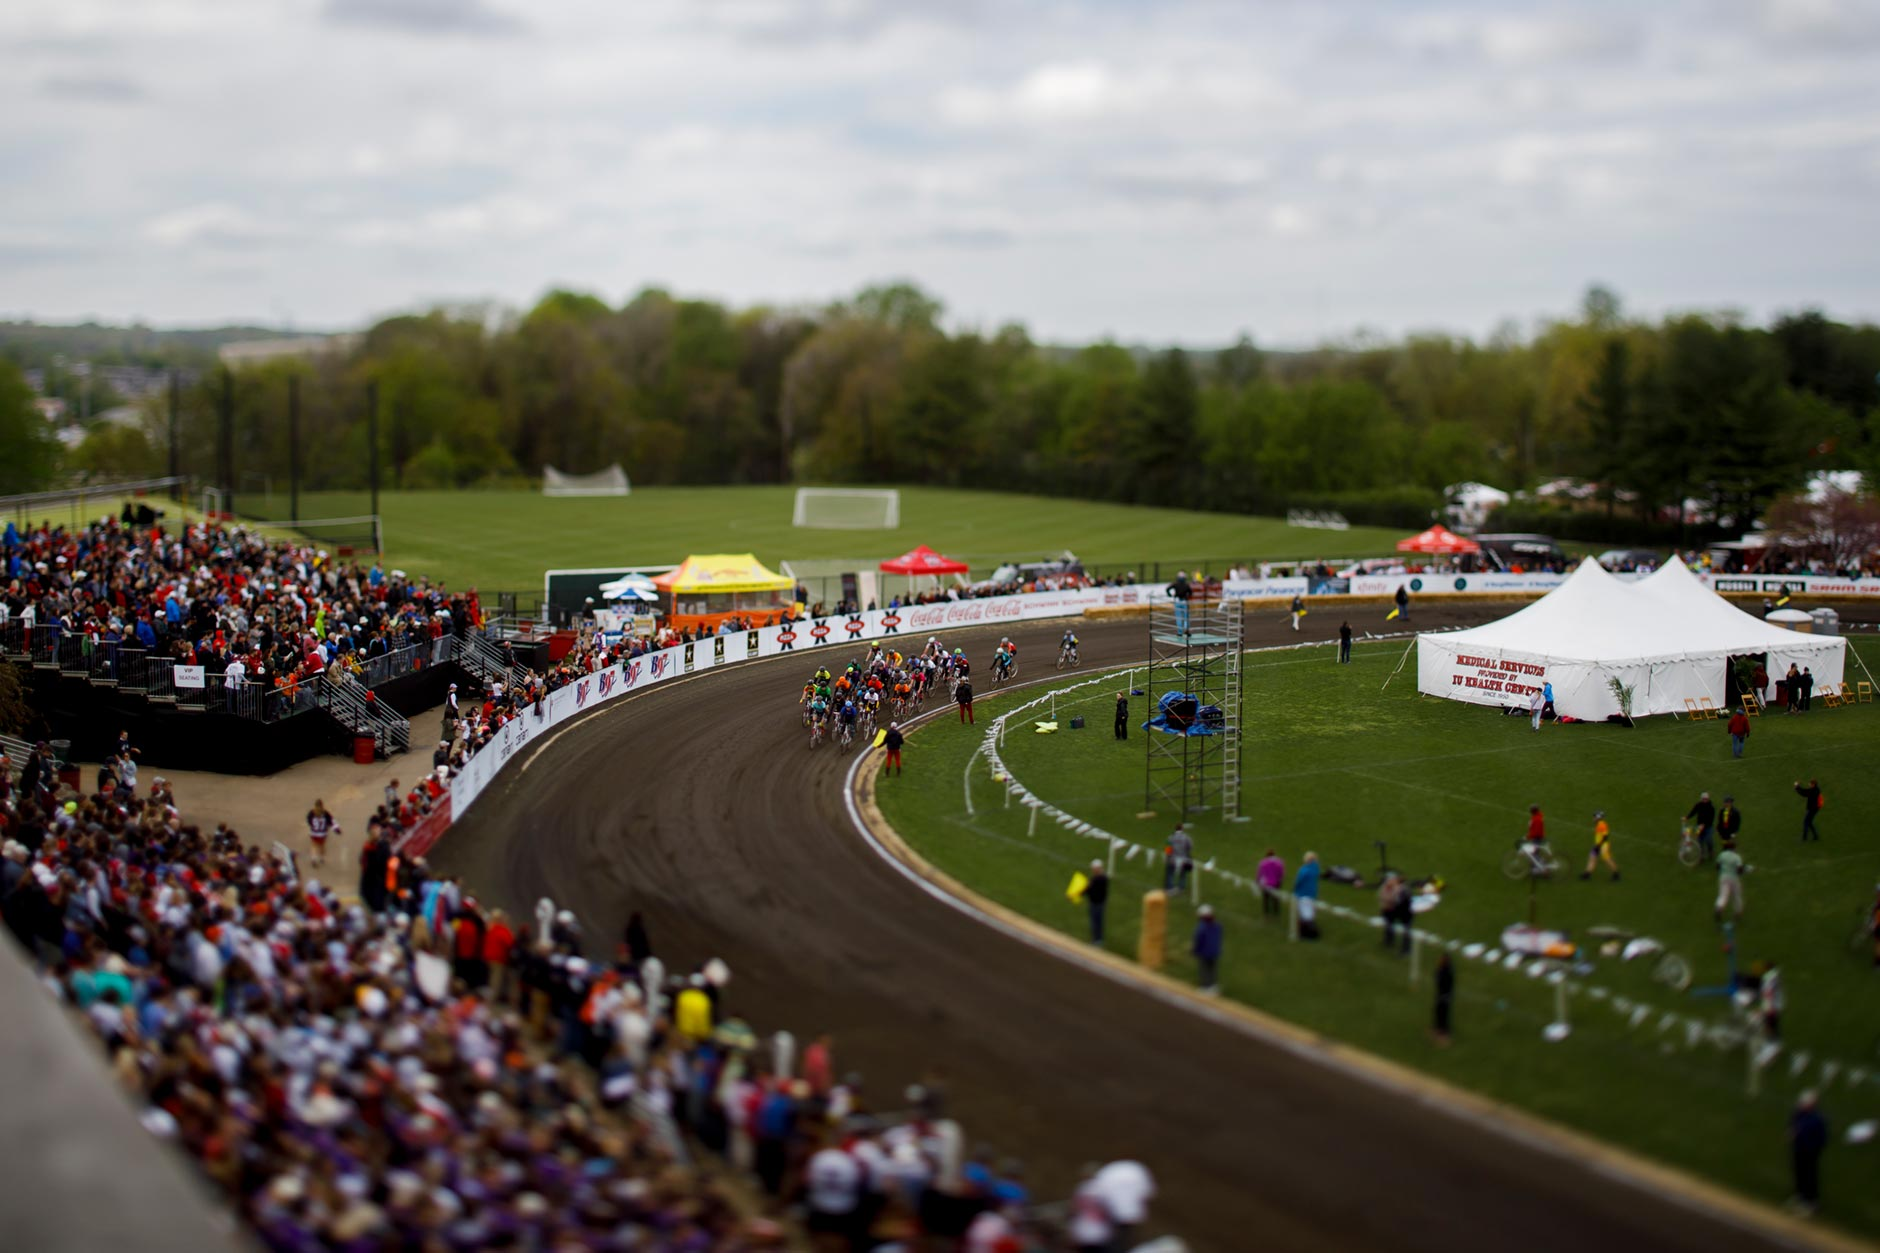 A pack of riders make their way out of turn four under the yellow flag during the Men's Little 500 at Bill Armstrong Stadium on Saturday, April 22, 2017. (James Brosher/IU Communications)